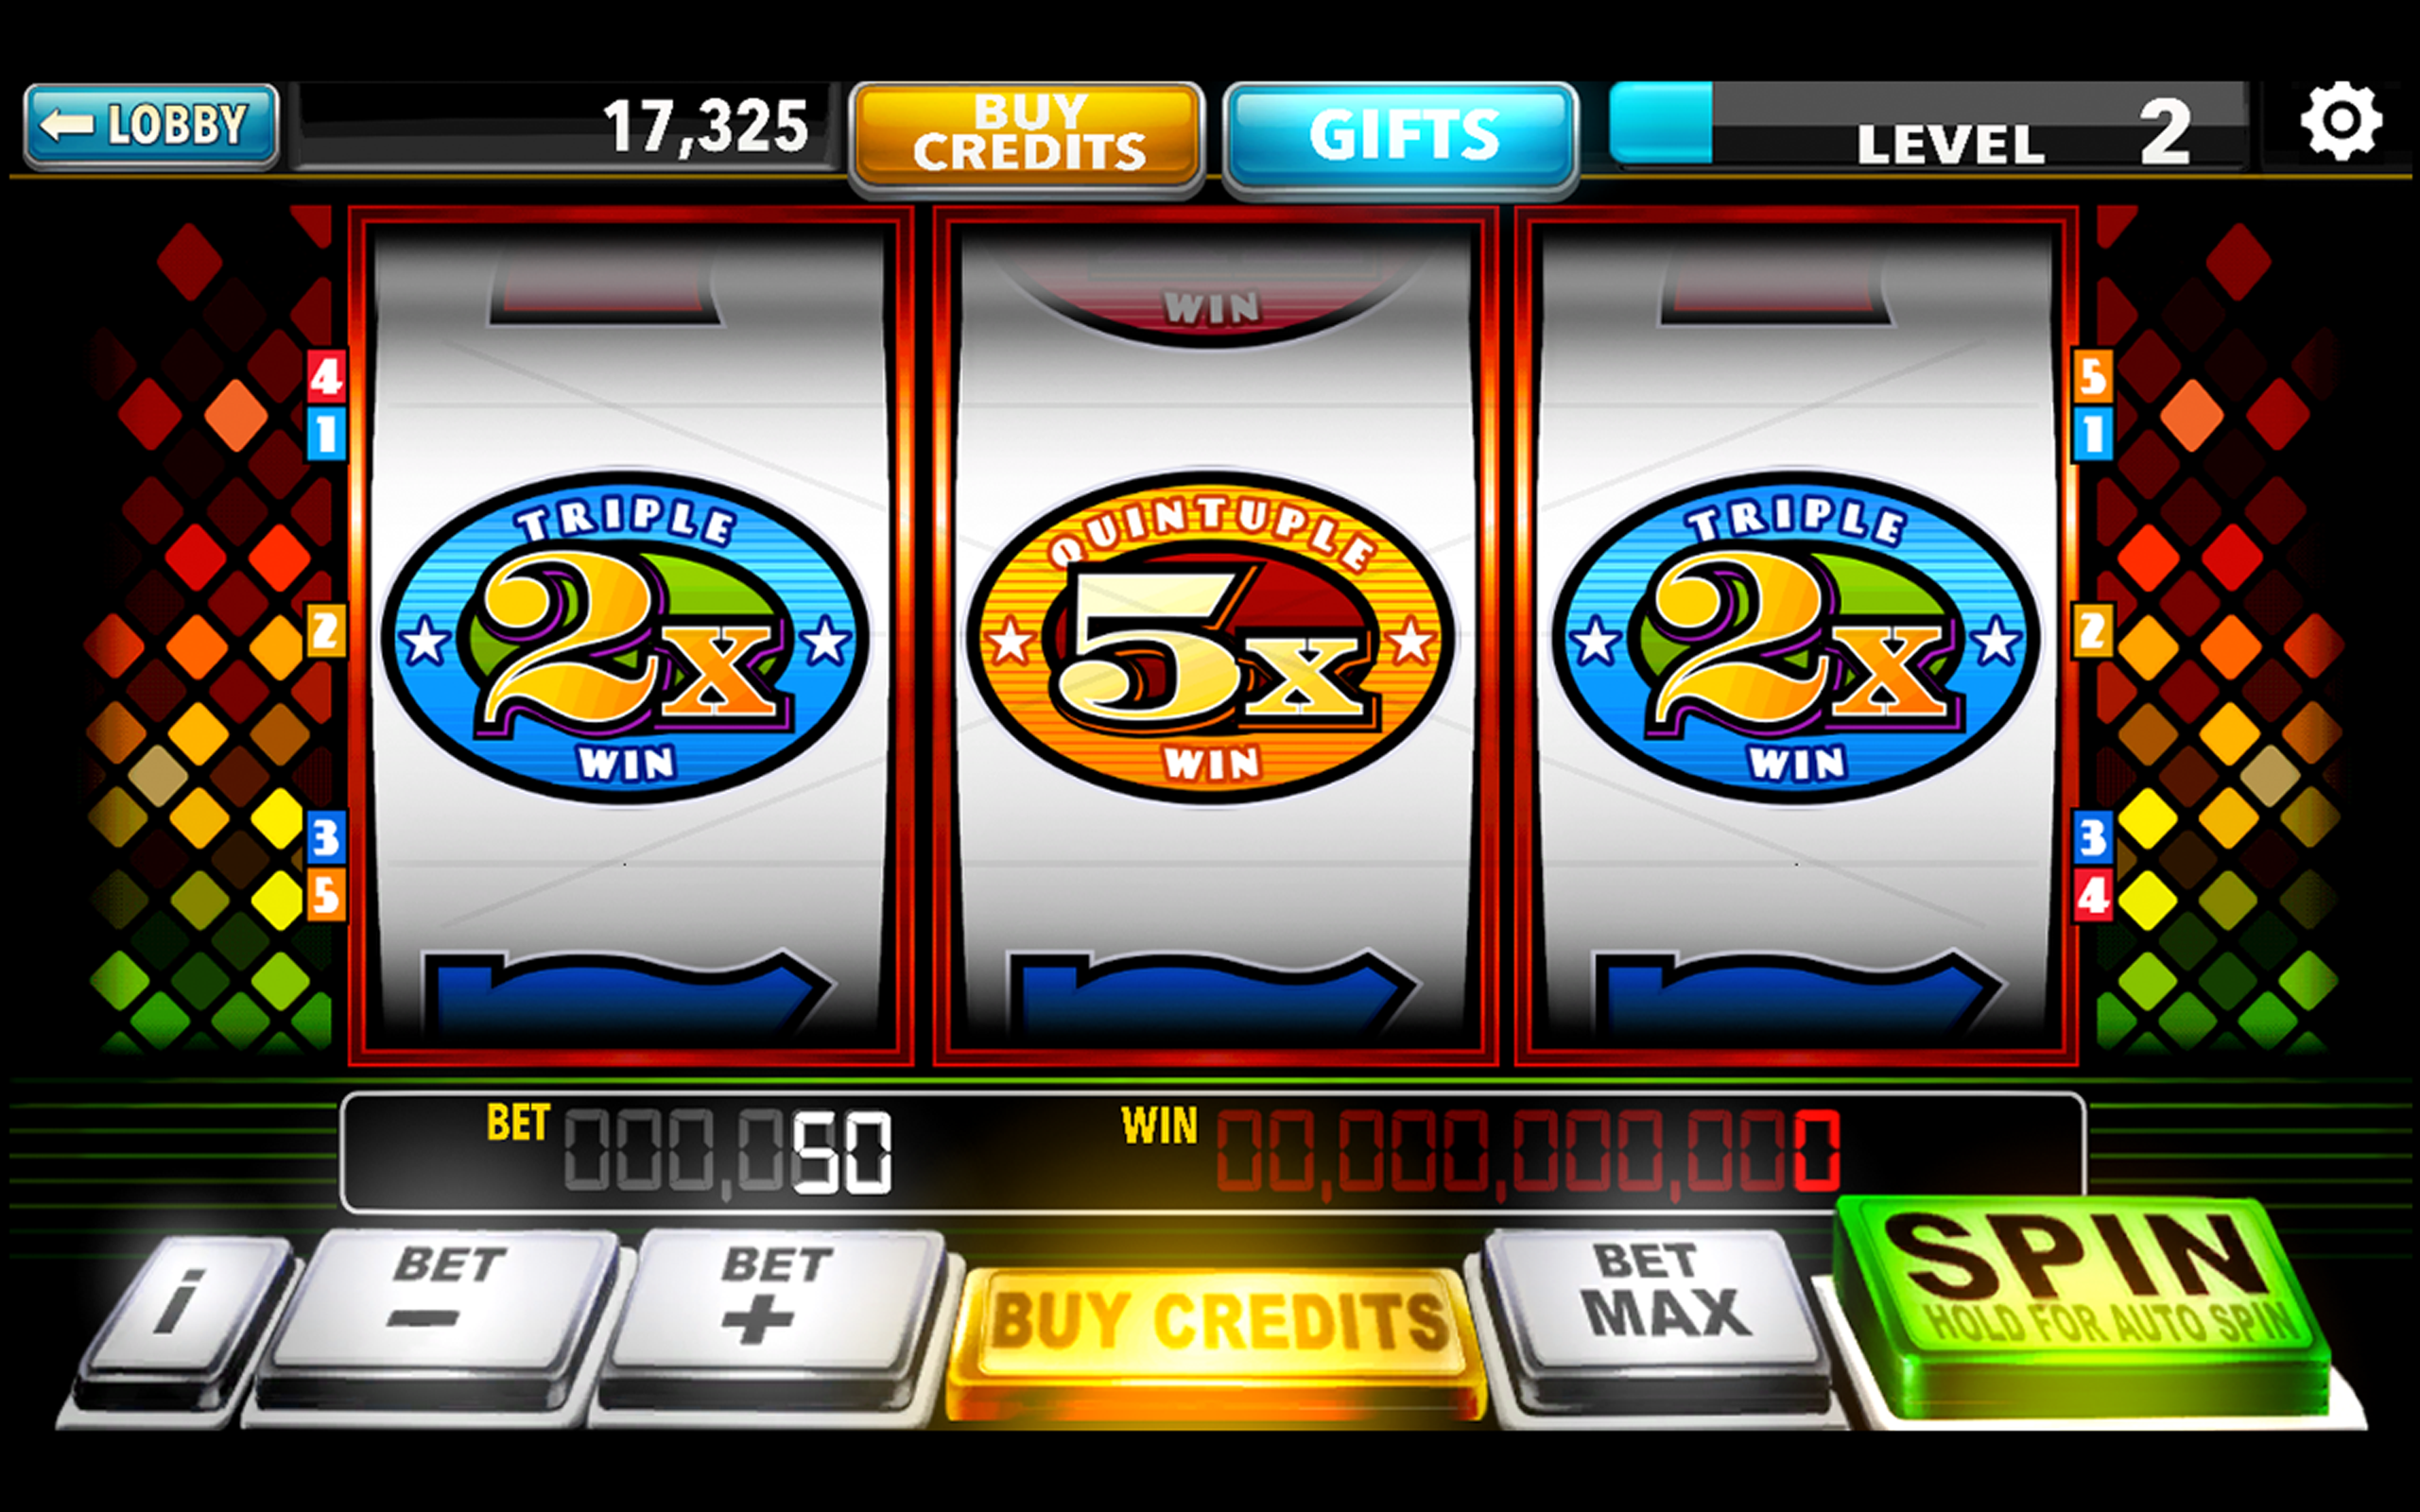 Slot Machine Games To Play For Free